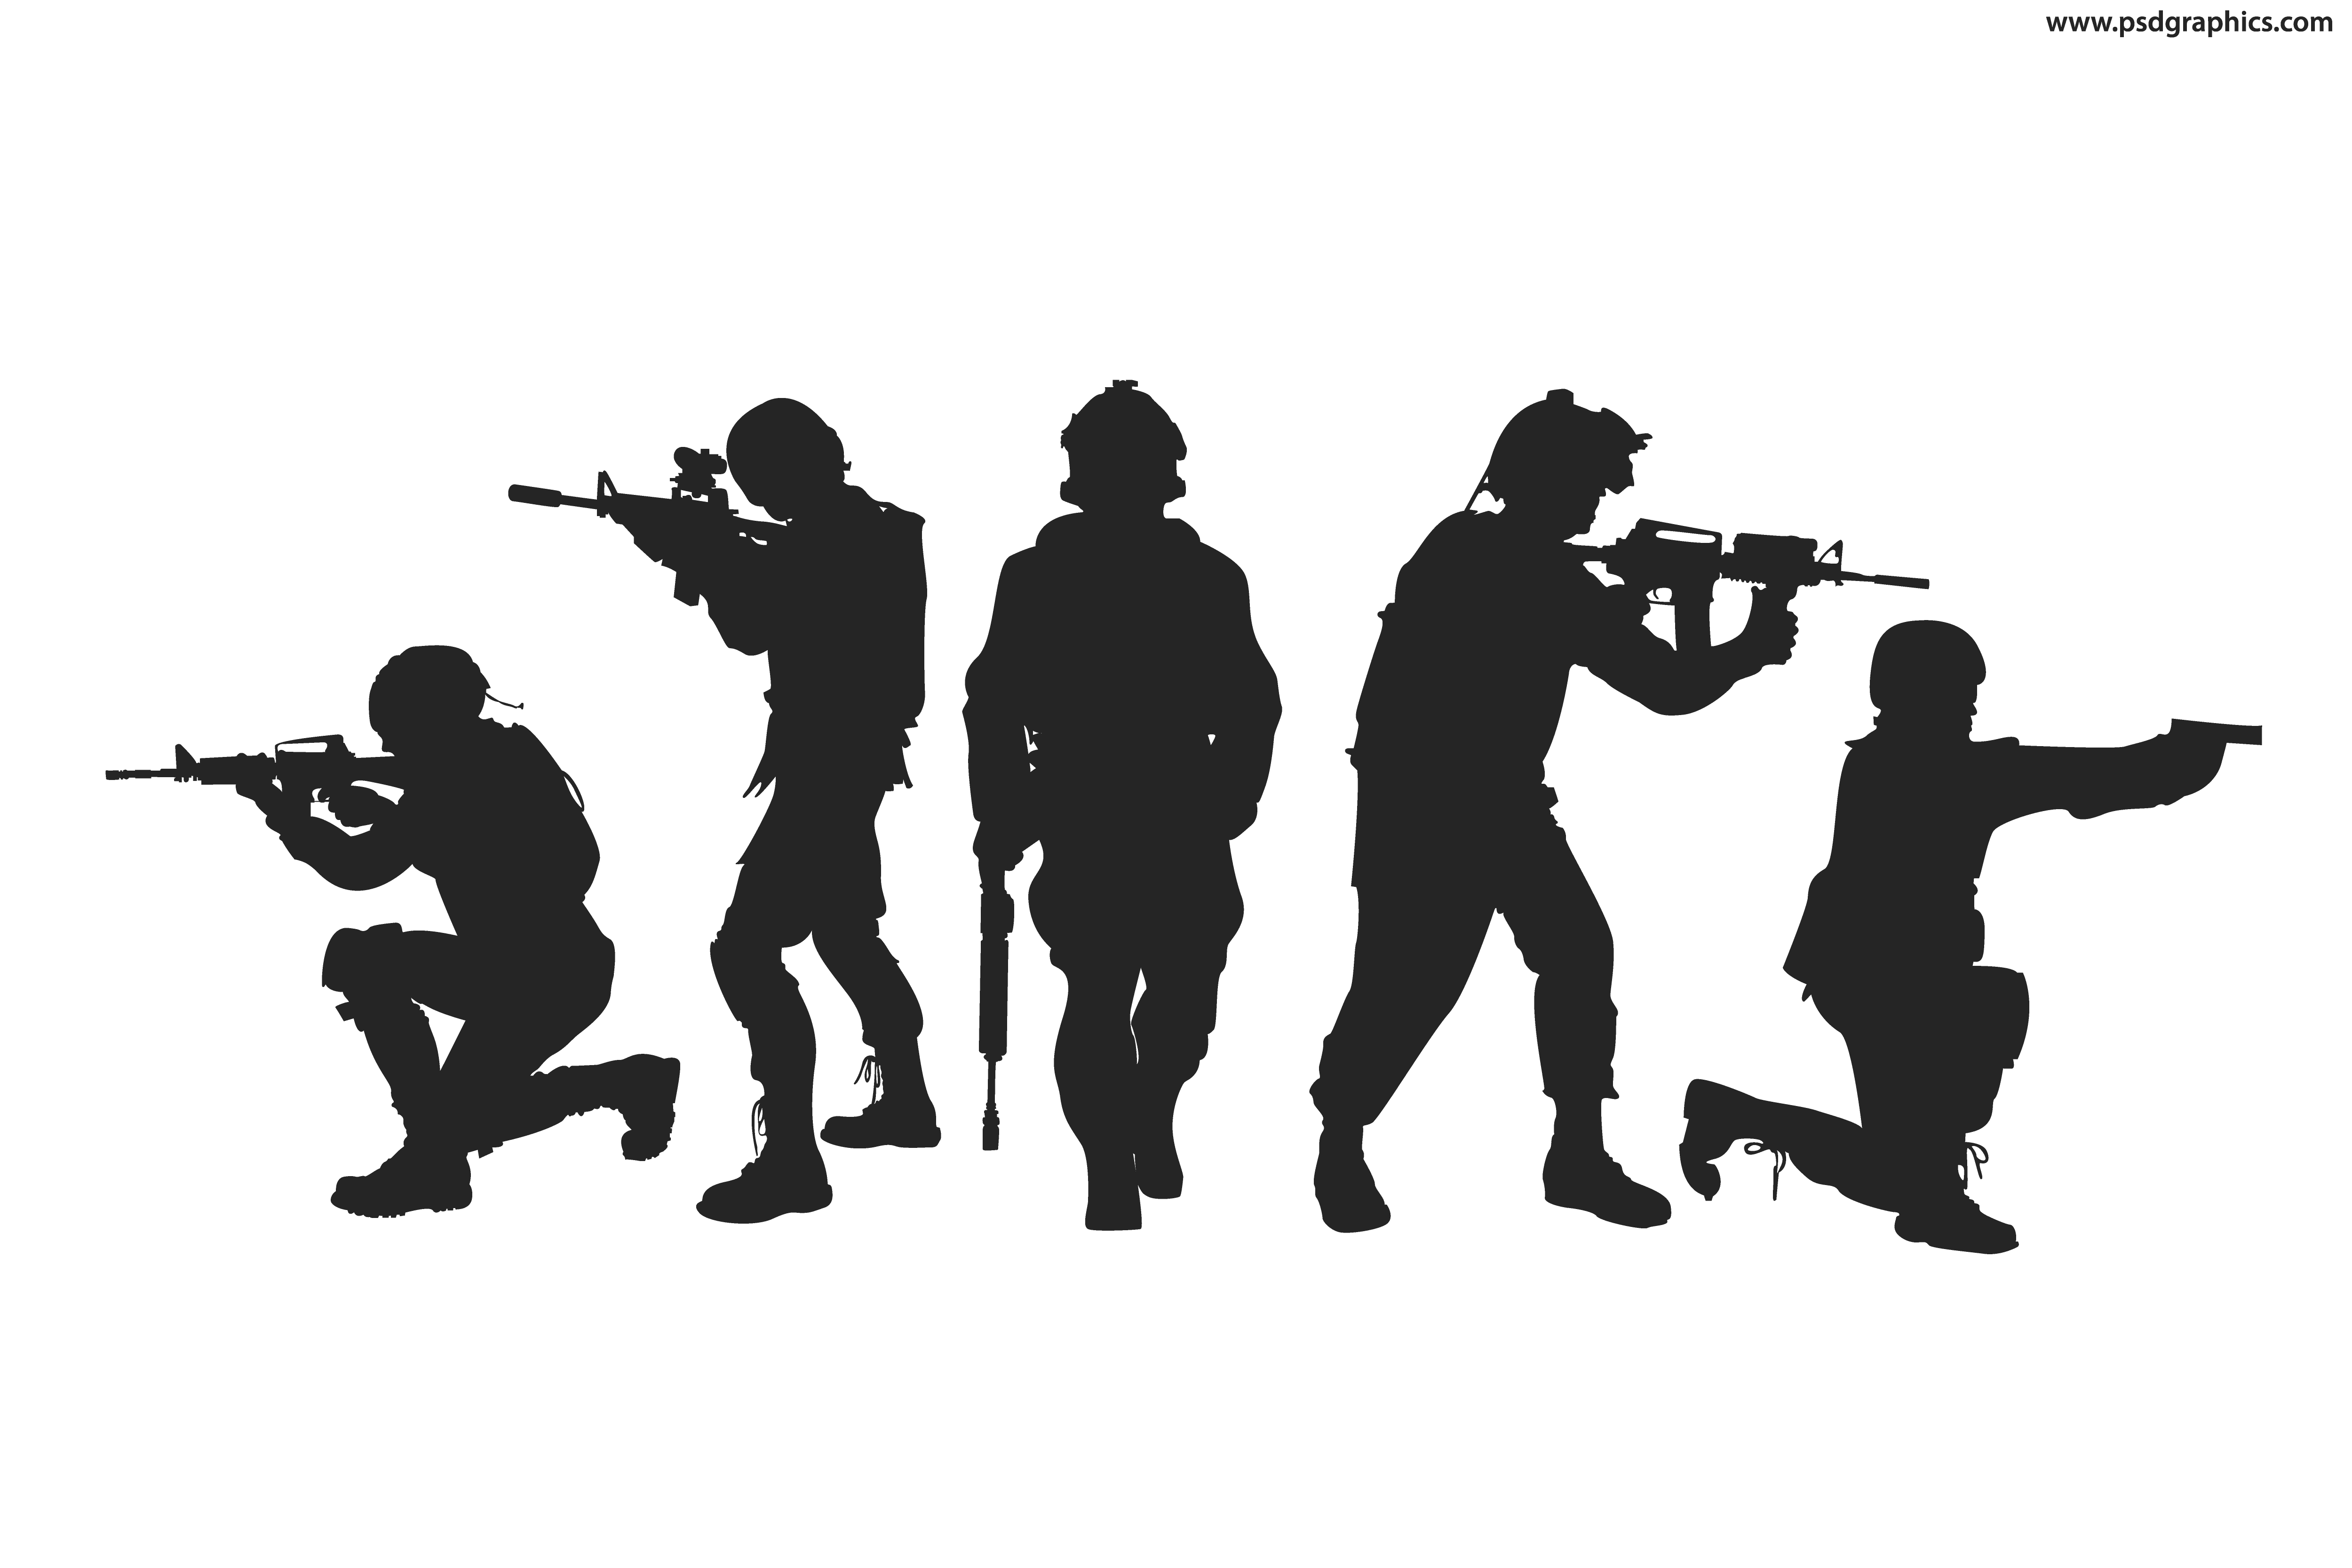 Silhouette Soldier Military Army.